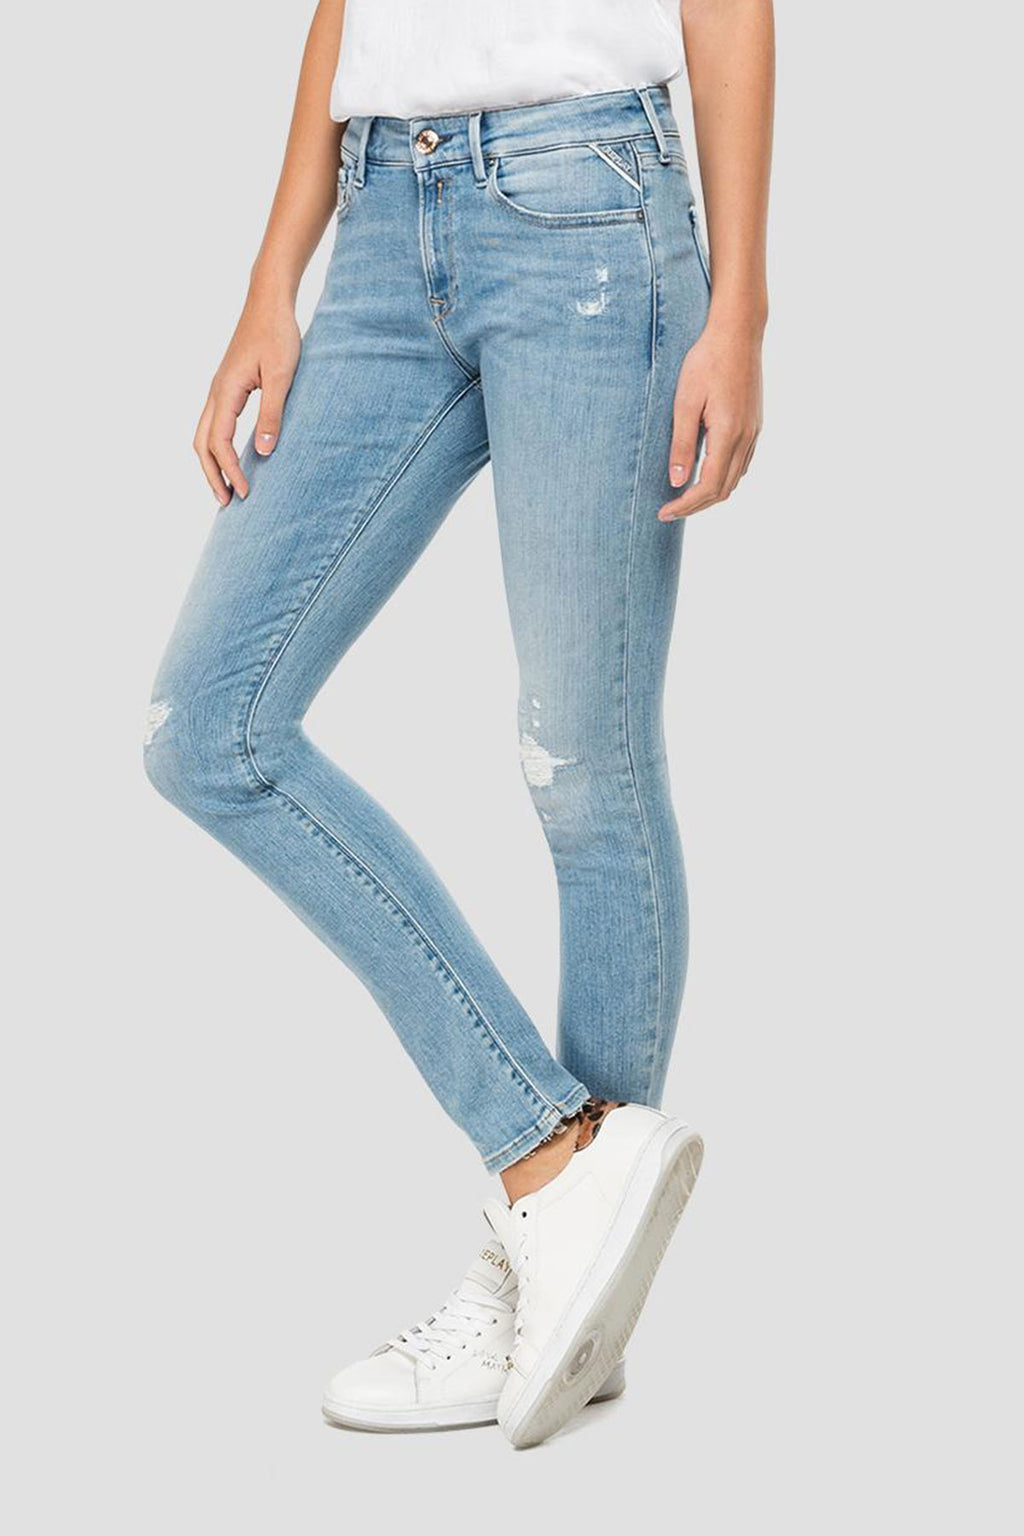 Replay Skinny High Waist Fit New Luz Jeans-Libas Trendy Fashion Store